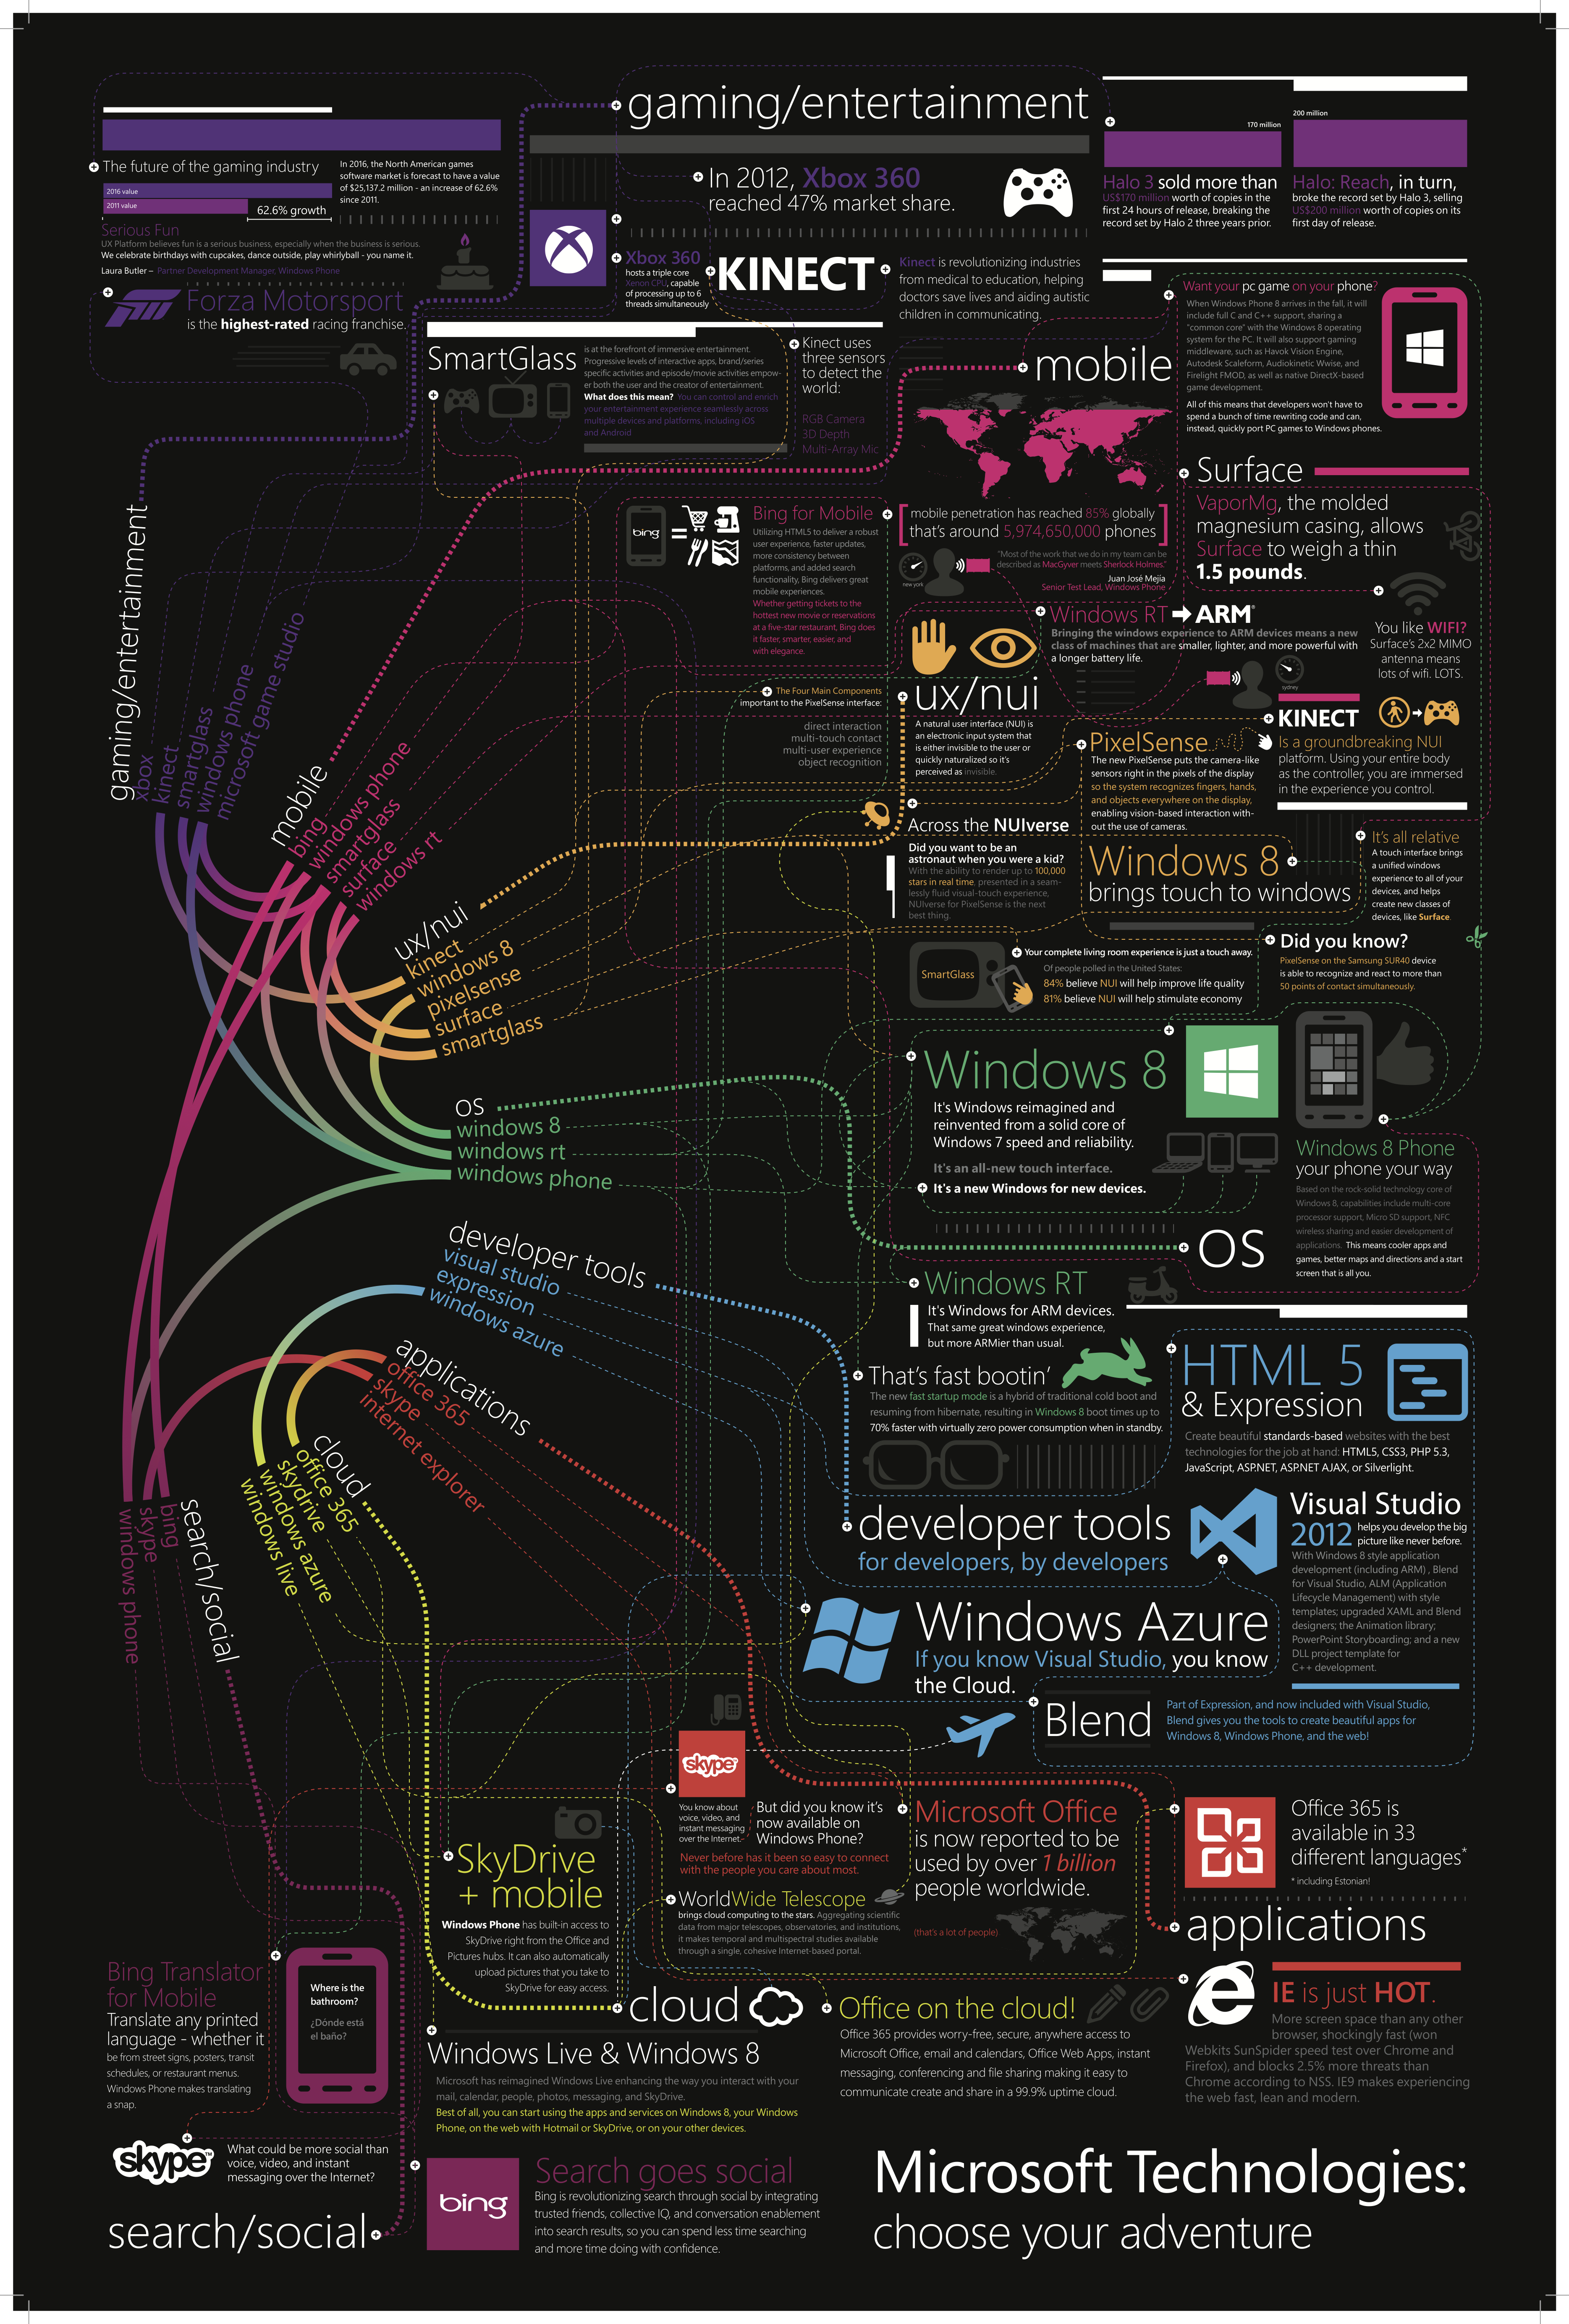 Microsoft Technologies Infographic